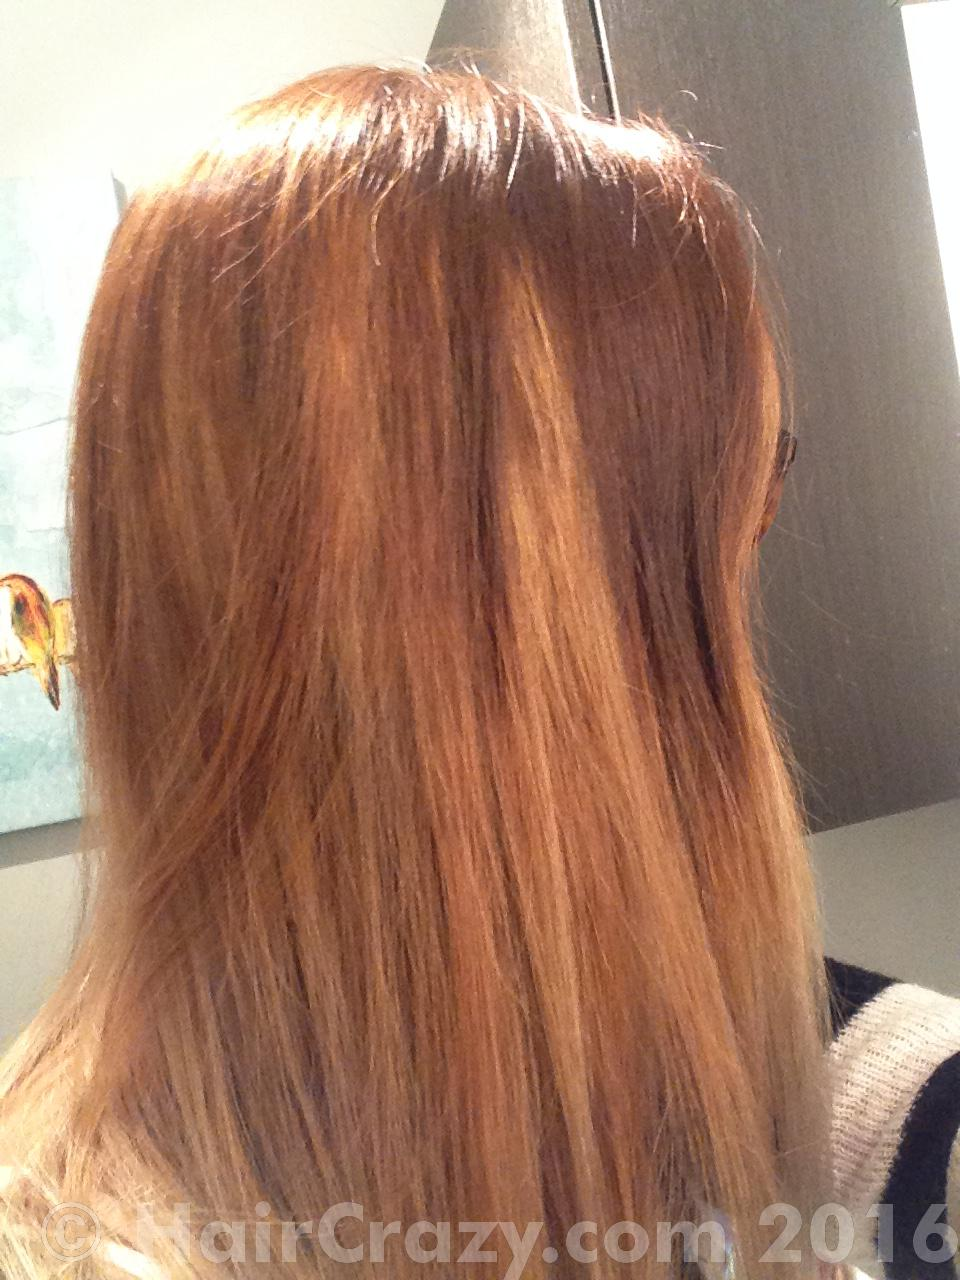 How To Blend Out Bleach Lines In Hair Forums Haircrazy Com